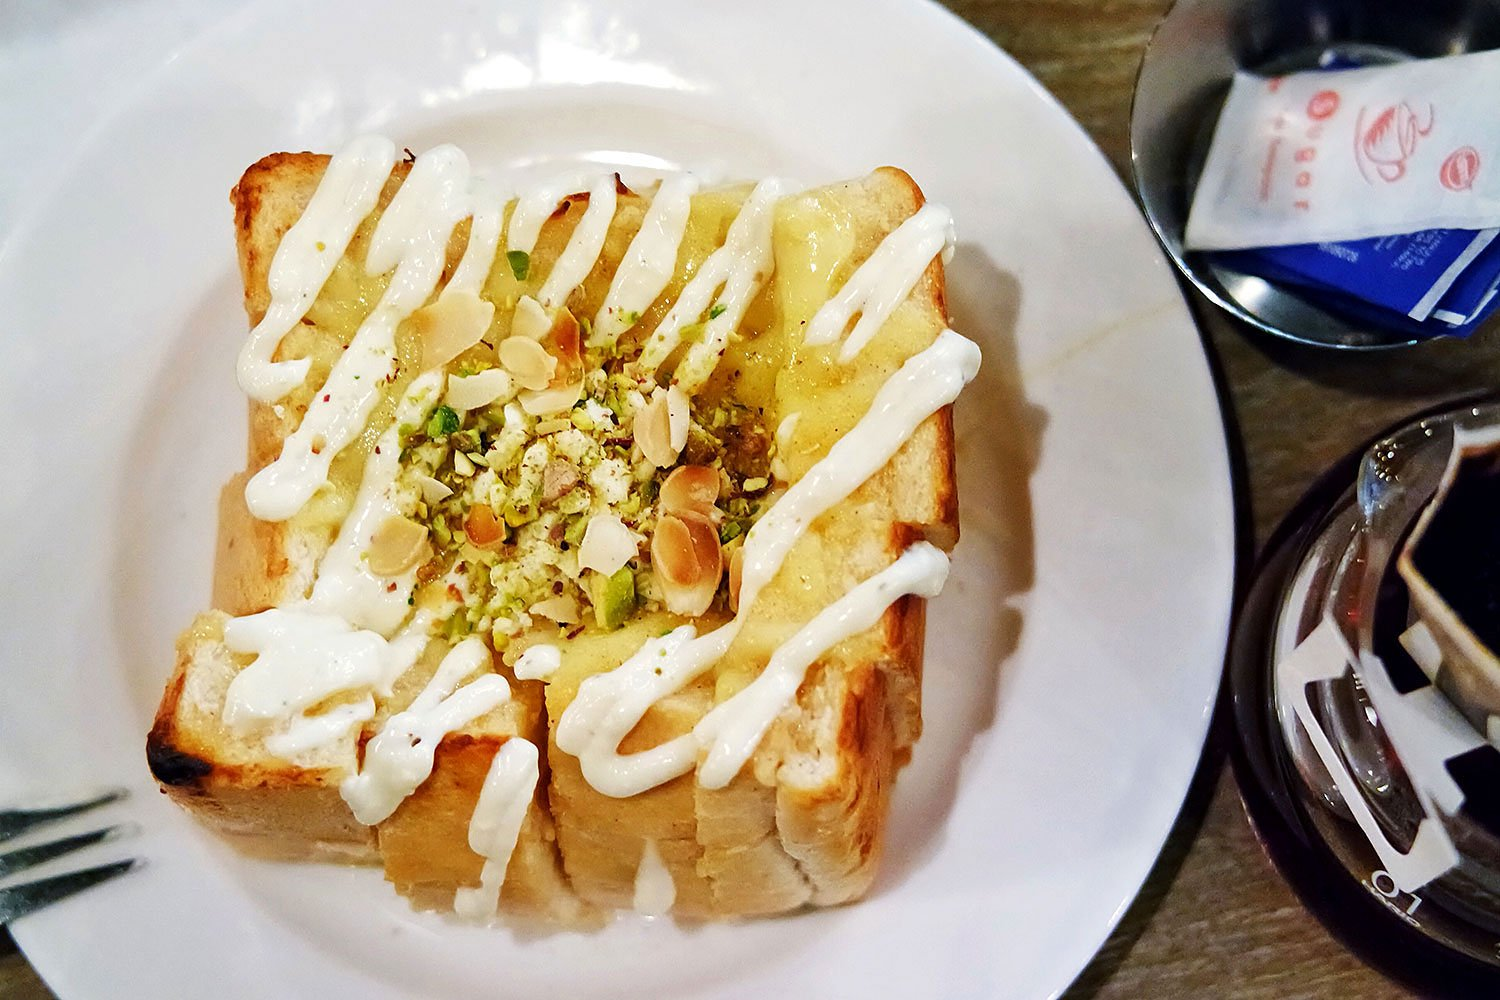 A thick slab of white fluffy bread is toasted, and covered in honey, melted cheese, and garlic cream.